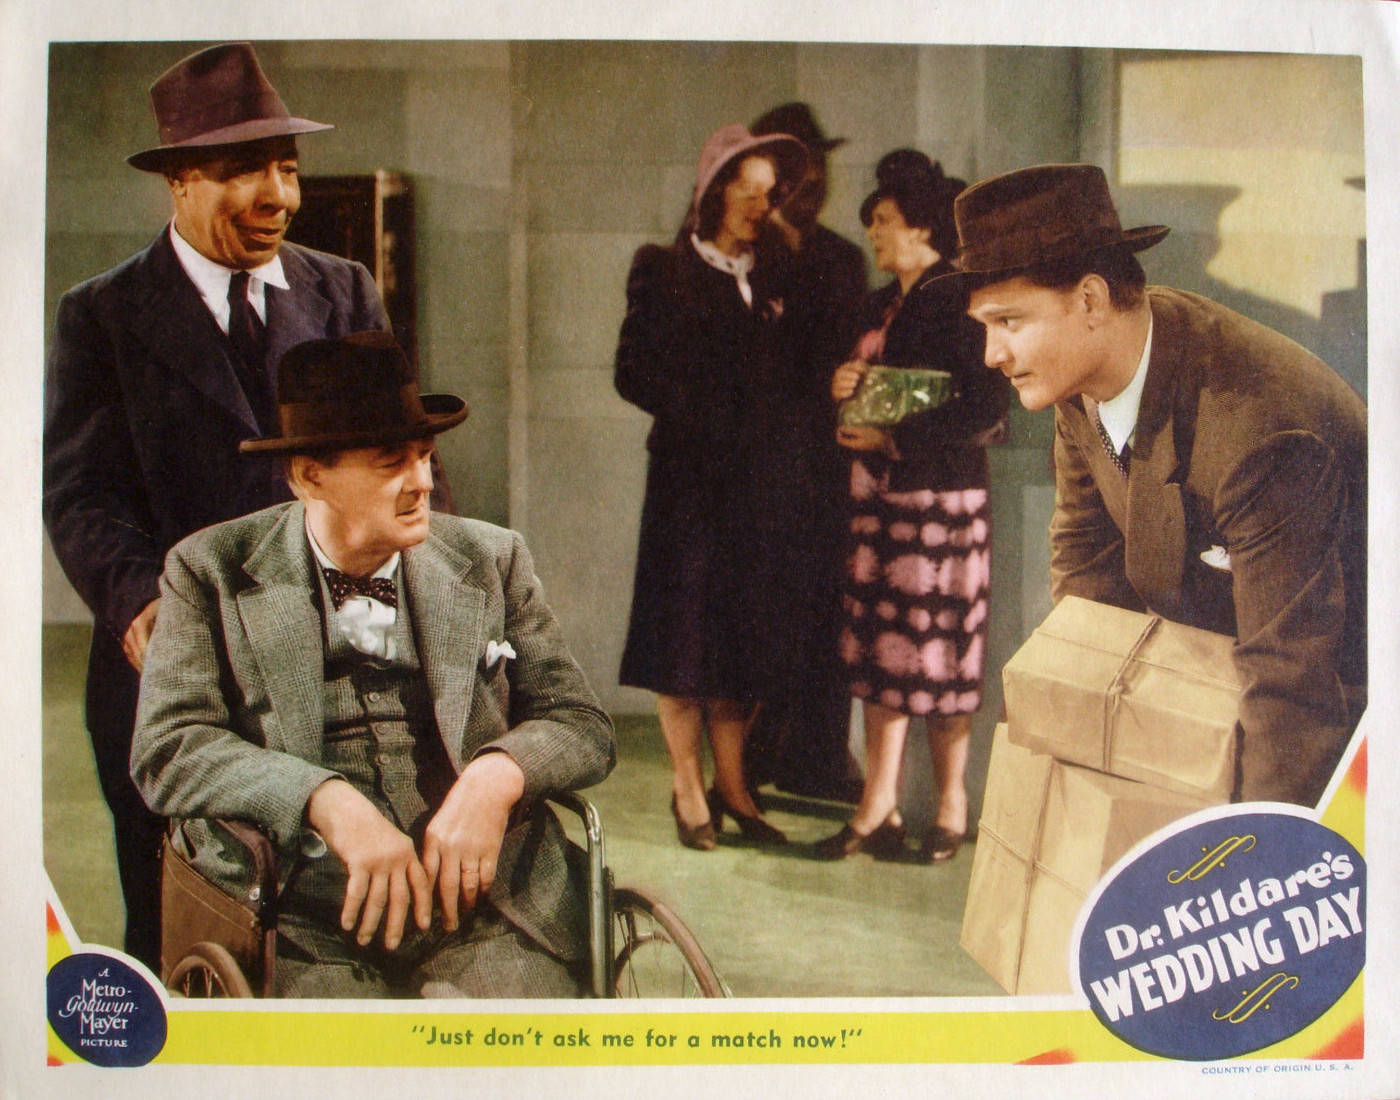 Dr. Kildare's Wedding Day, starring Lew Ayres, Laraine Day, Lionel Barrymore, Red Skelton